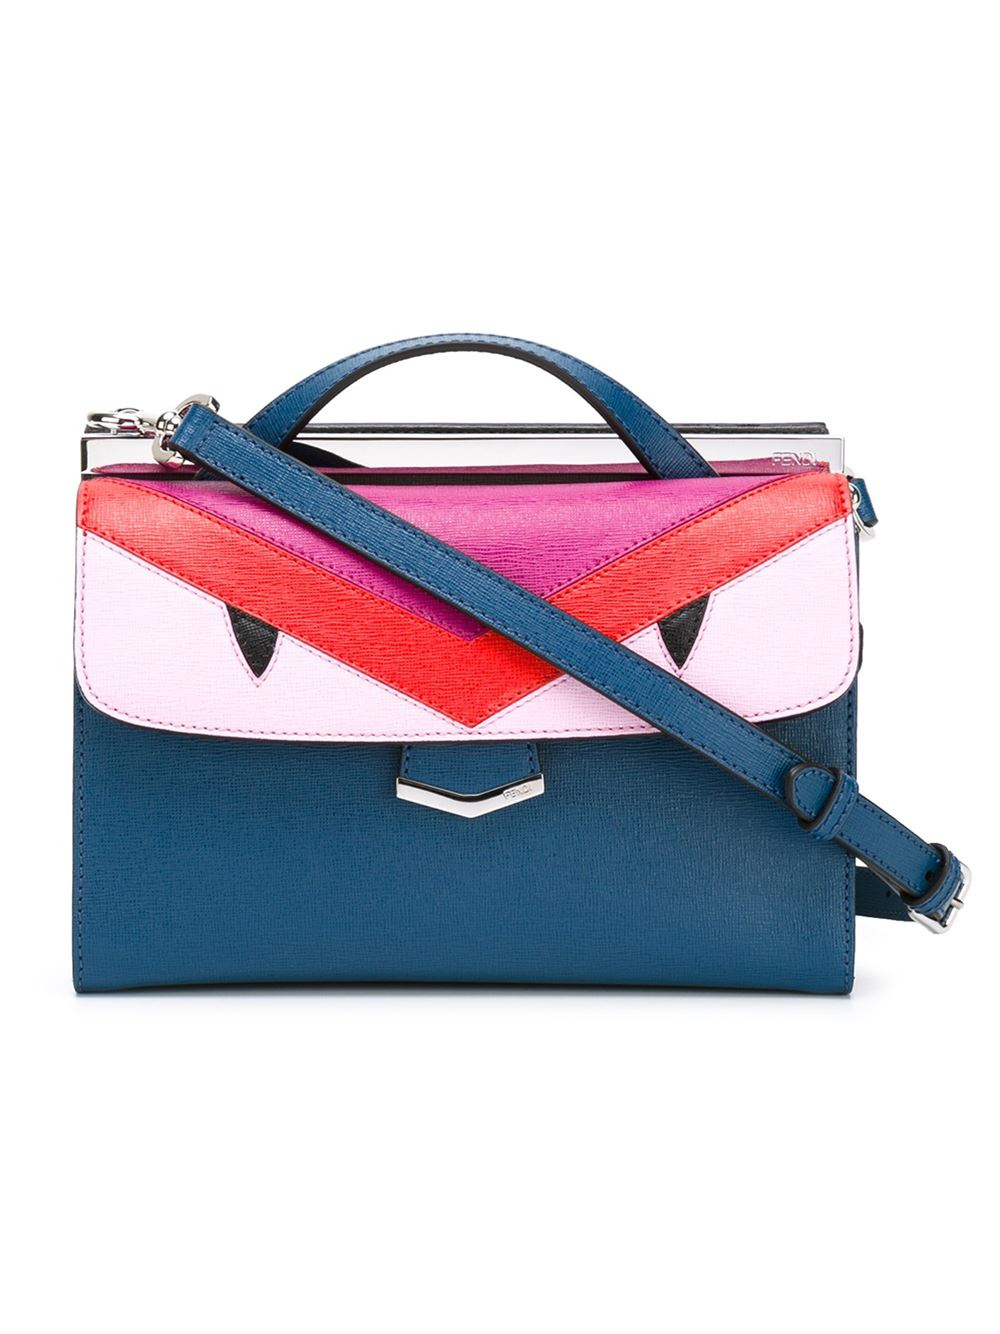 Lyst - Fendi Cobalt And Fuchsia Leather Monster  demi Jour  Split ... 45be88f72f